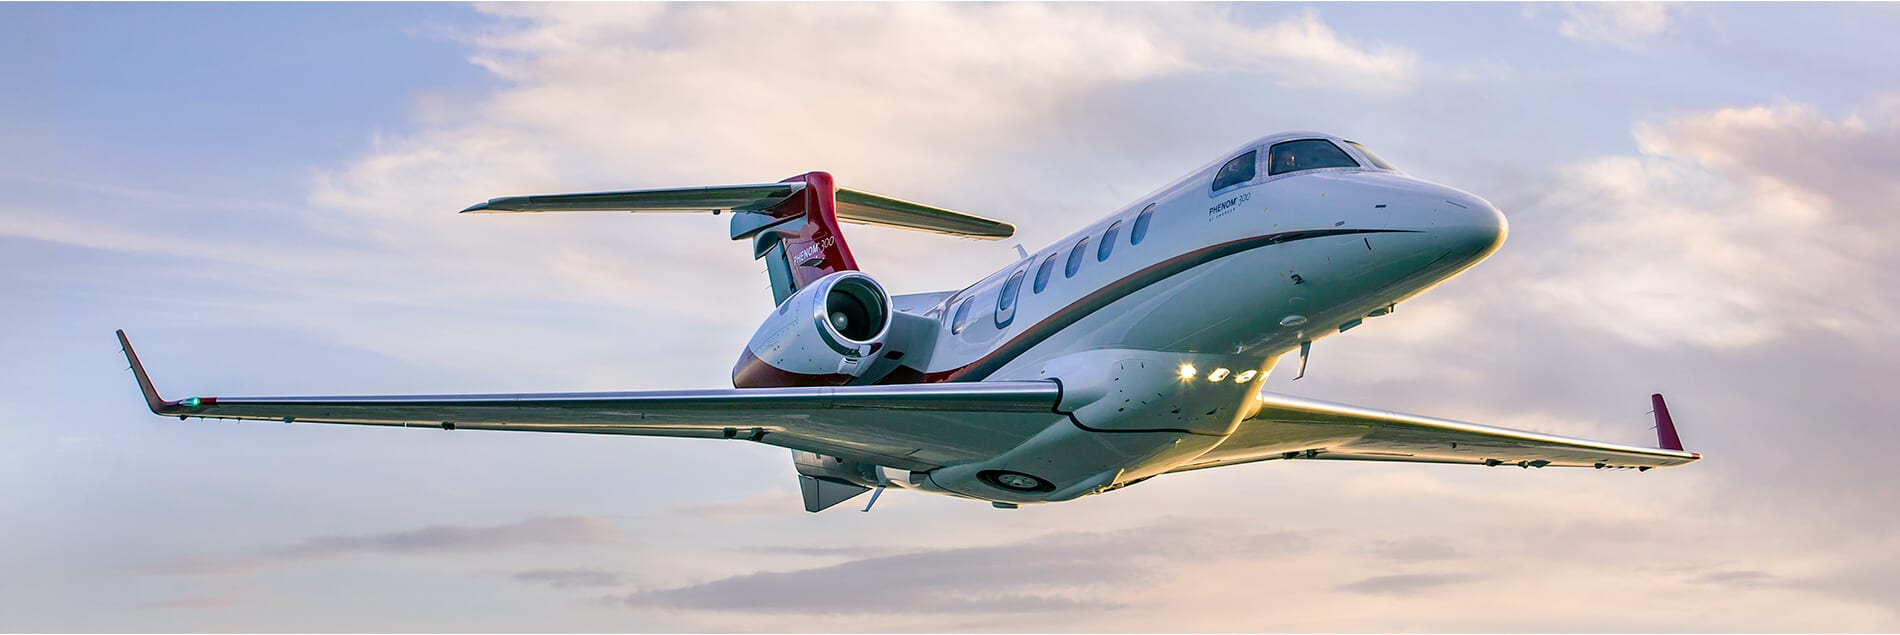 Phenom 300 Aerial Against Pink and Blue Sky